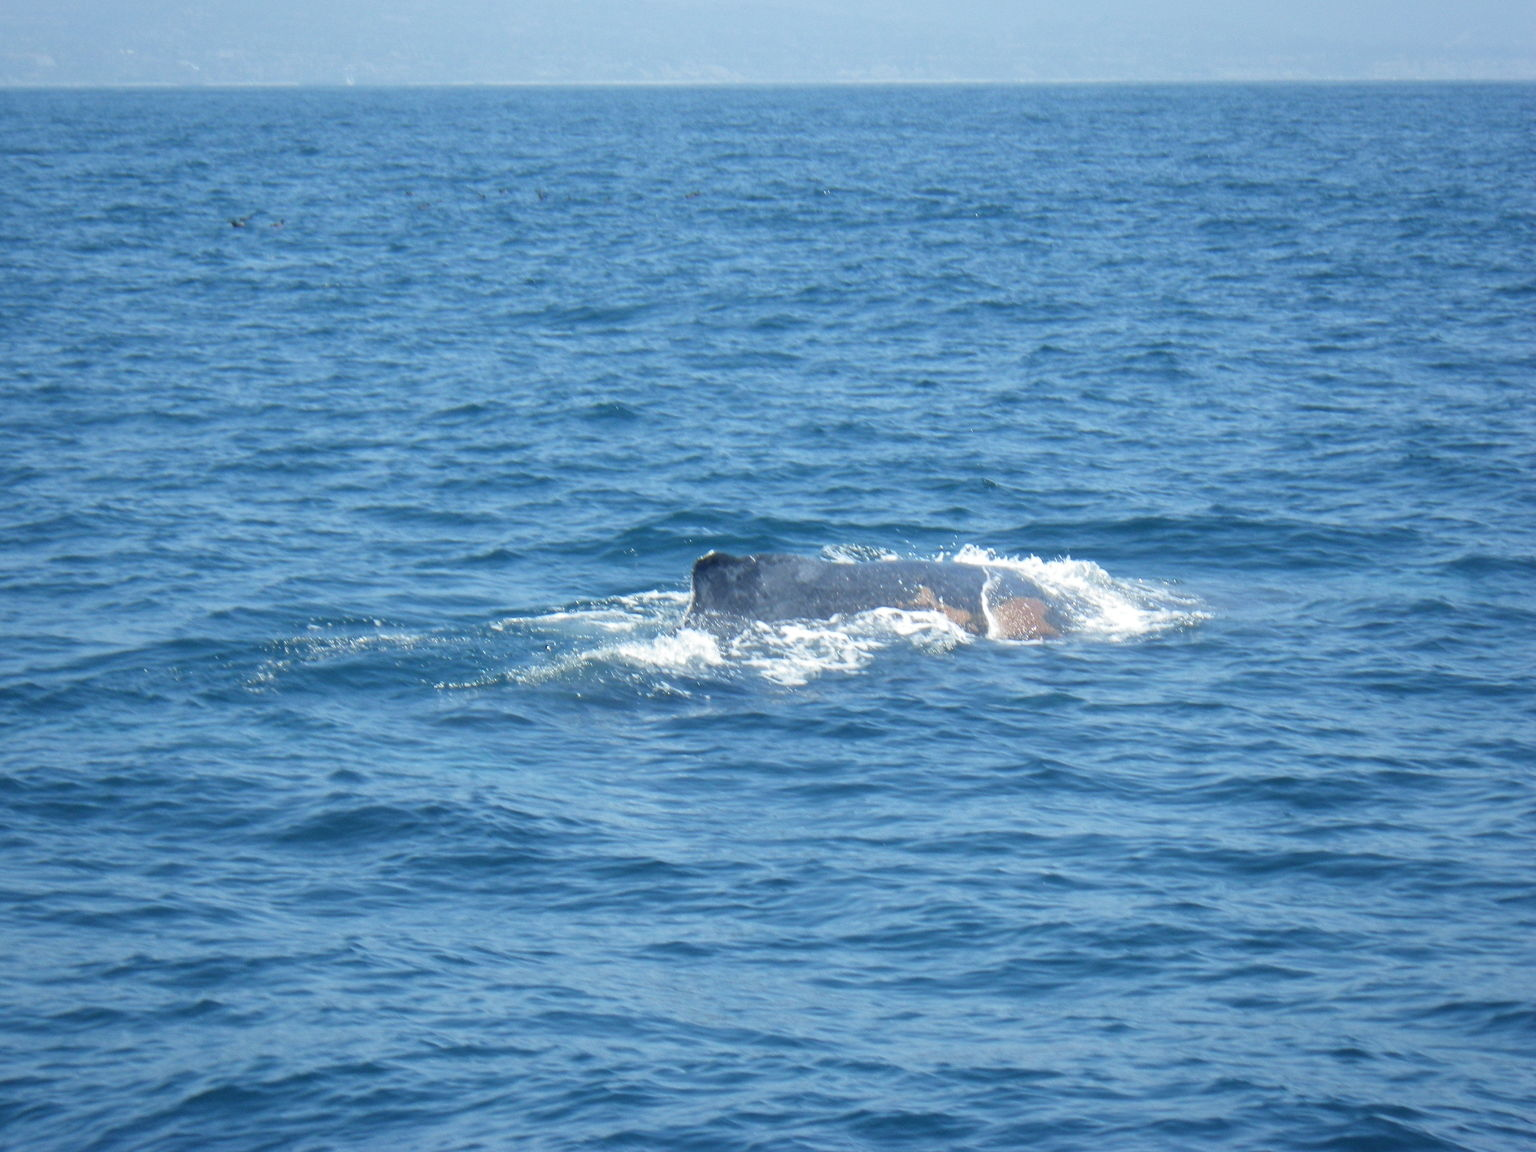 MAIS FOTOS, Whale Watching Excursion in Dana Point